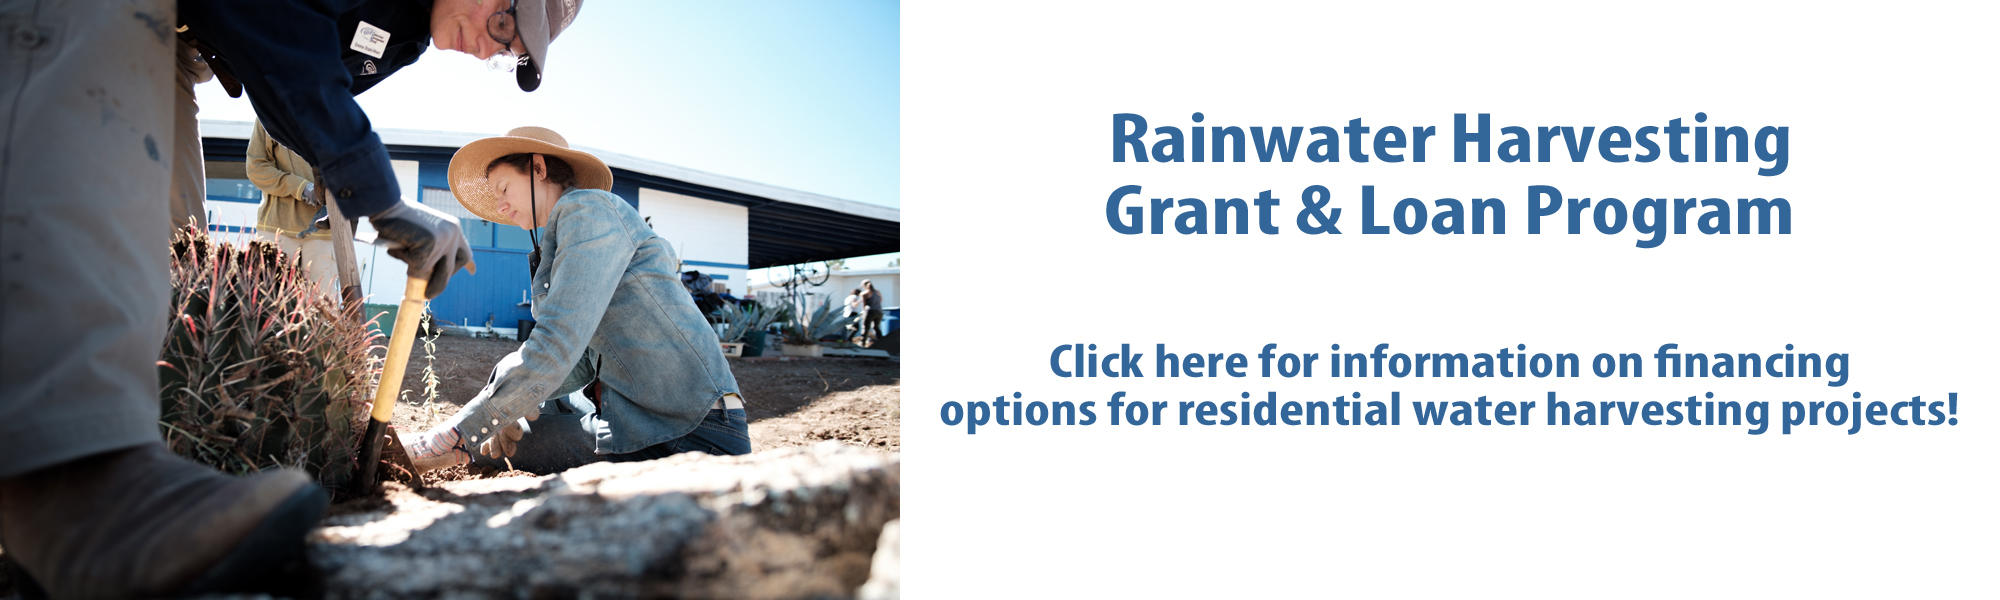 Rainwater harvesting grant & loan program.